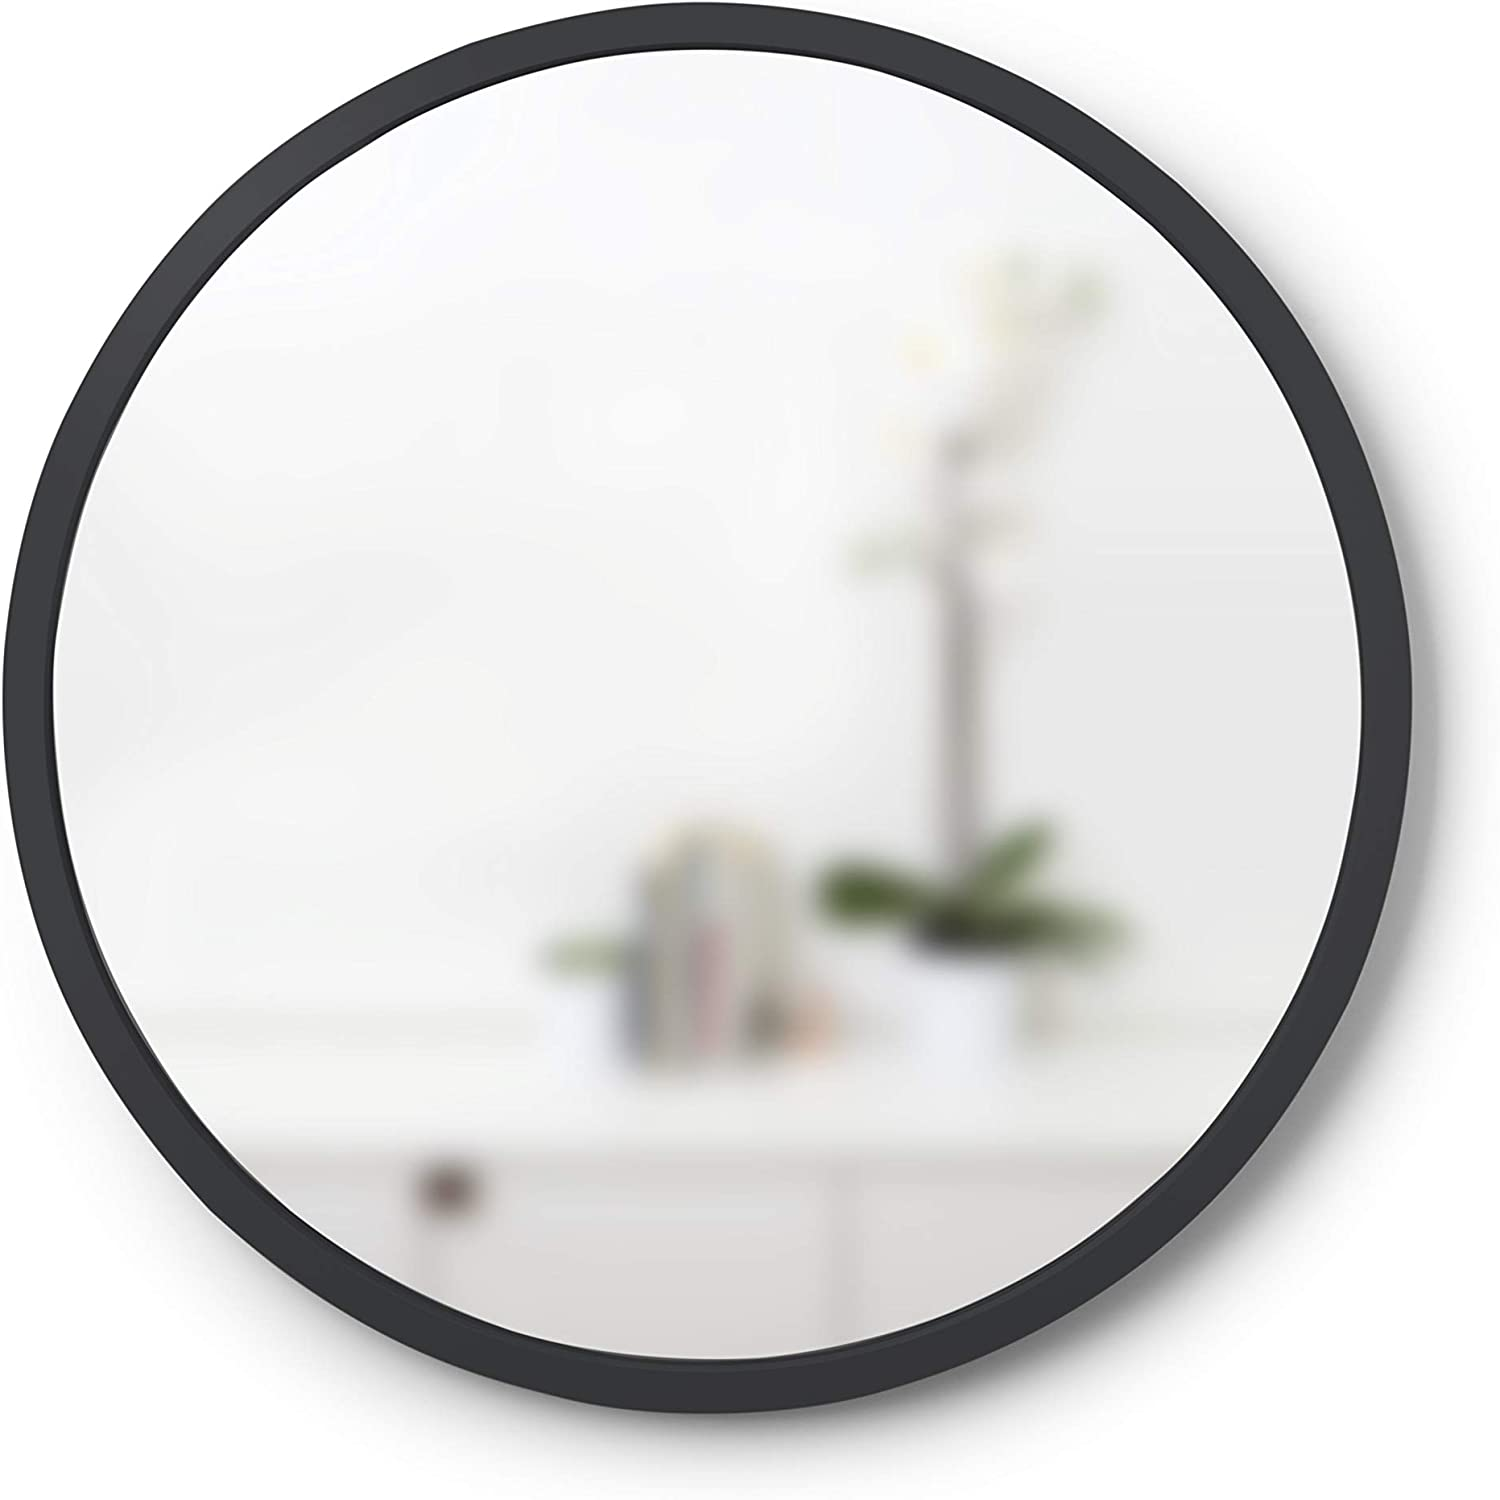 Umbra Hub Rubber Frame-18-Inch Round Mirror for Entryways, Bathrooms, Living Rooms and More, 18-Inch, Black